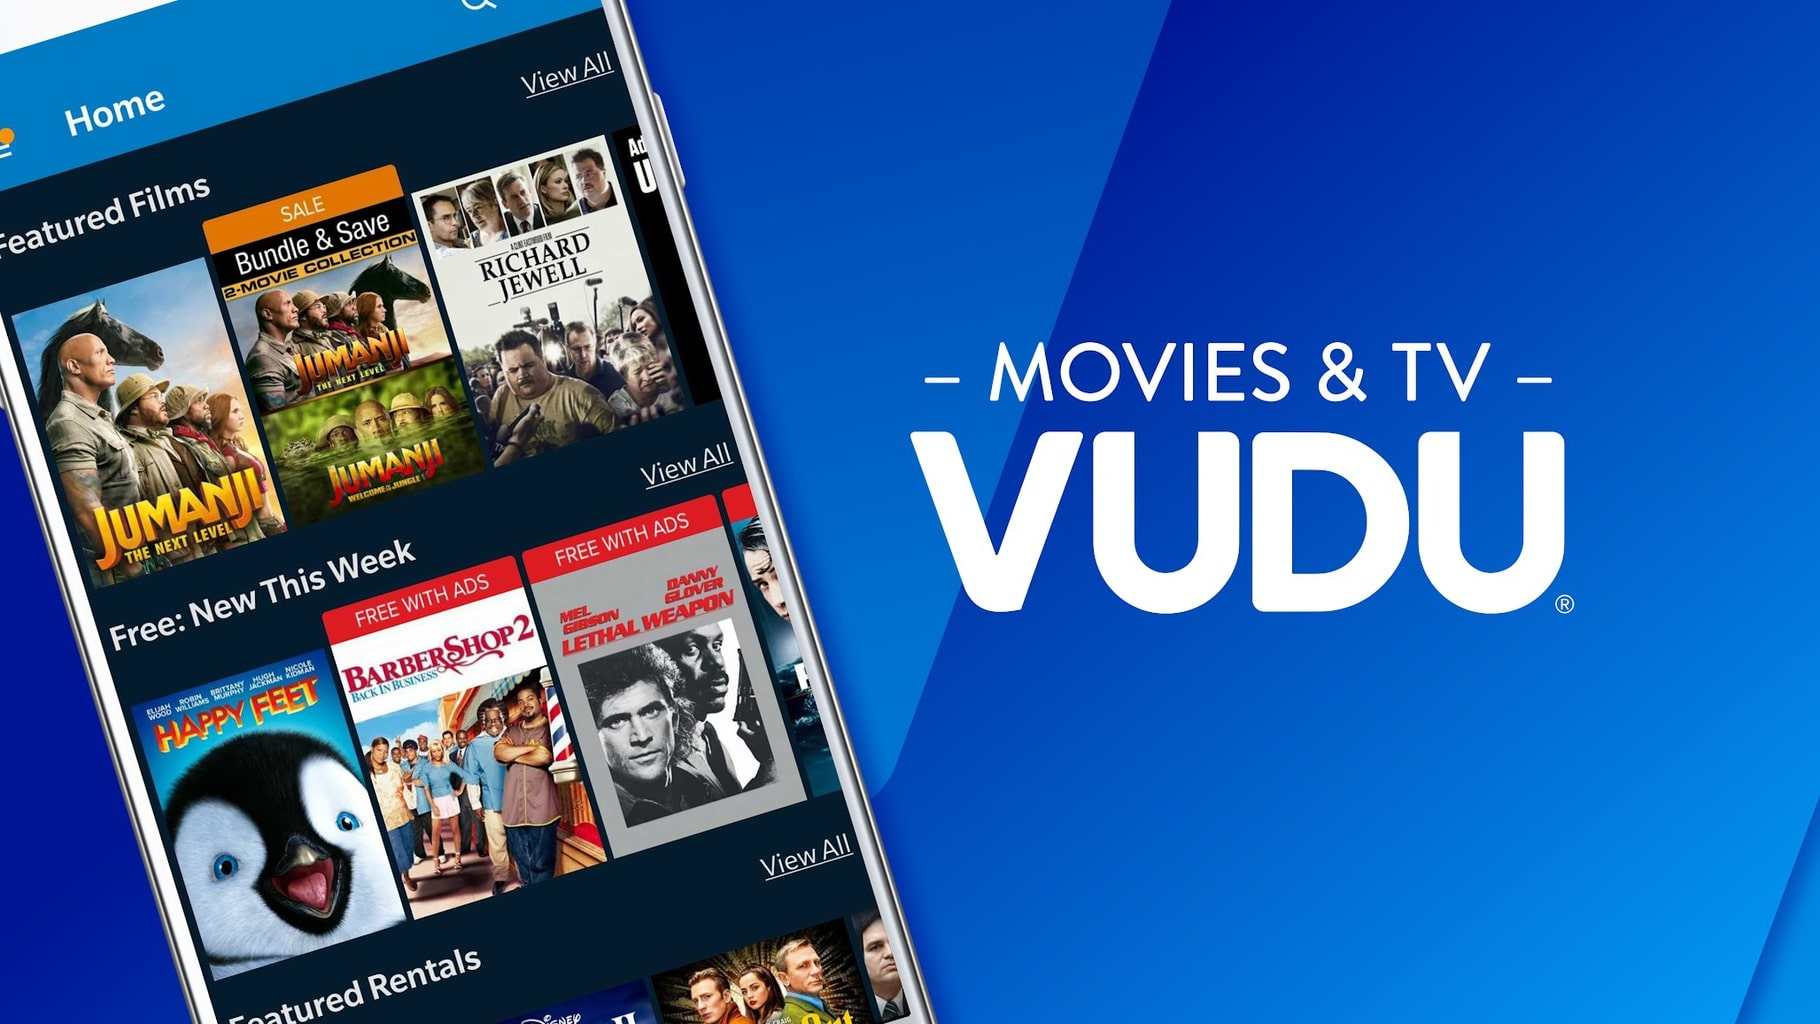 free movies and tv shows online, Vudu